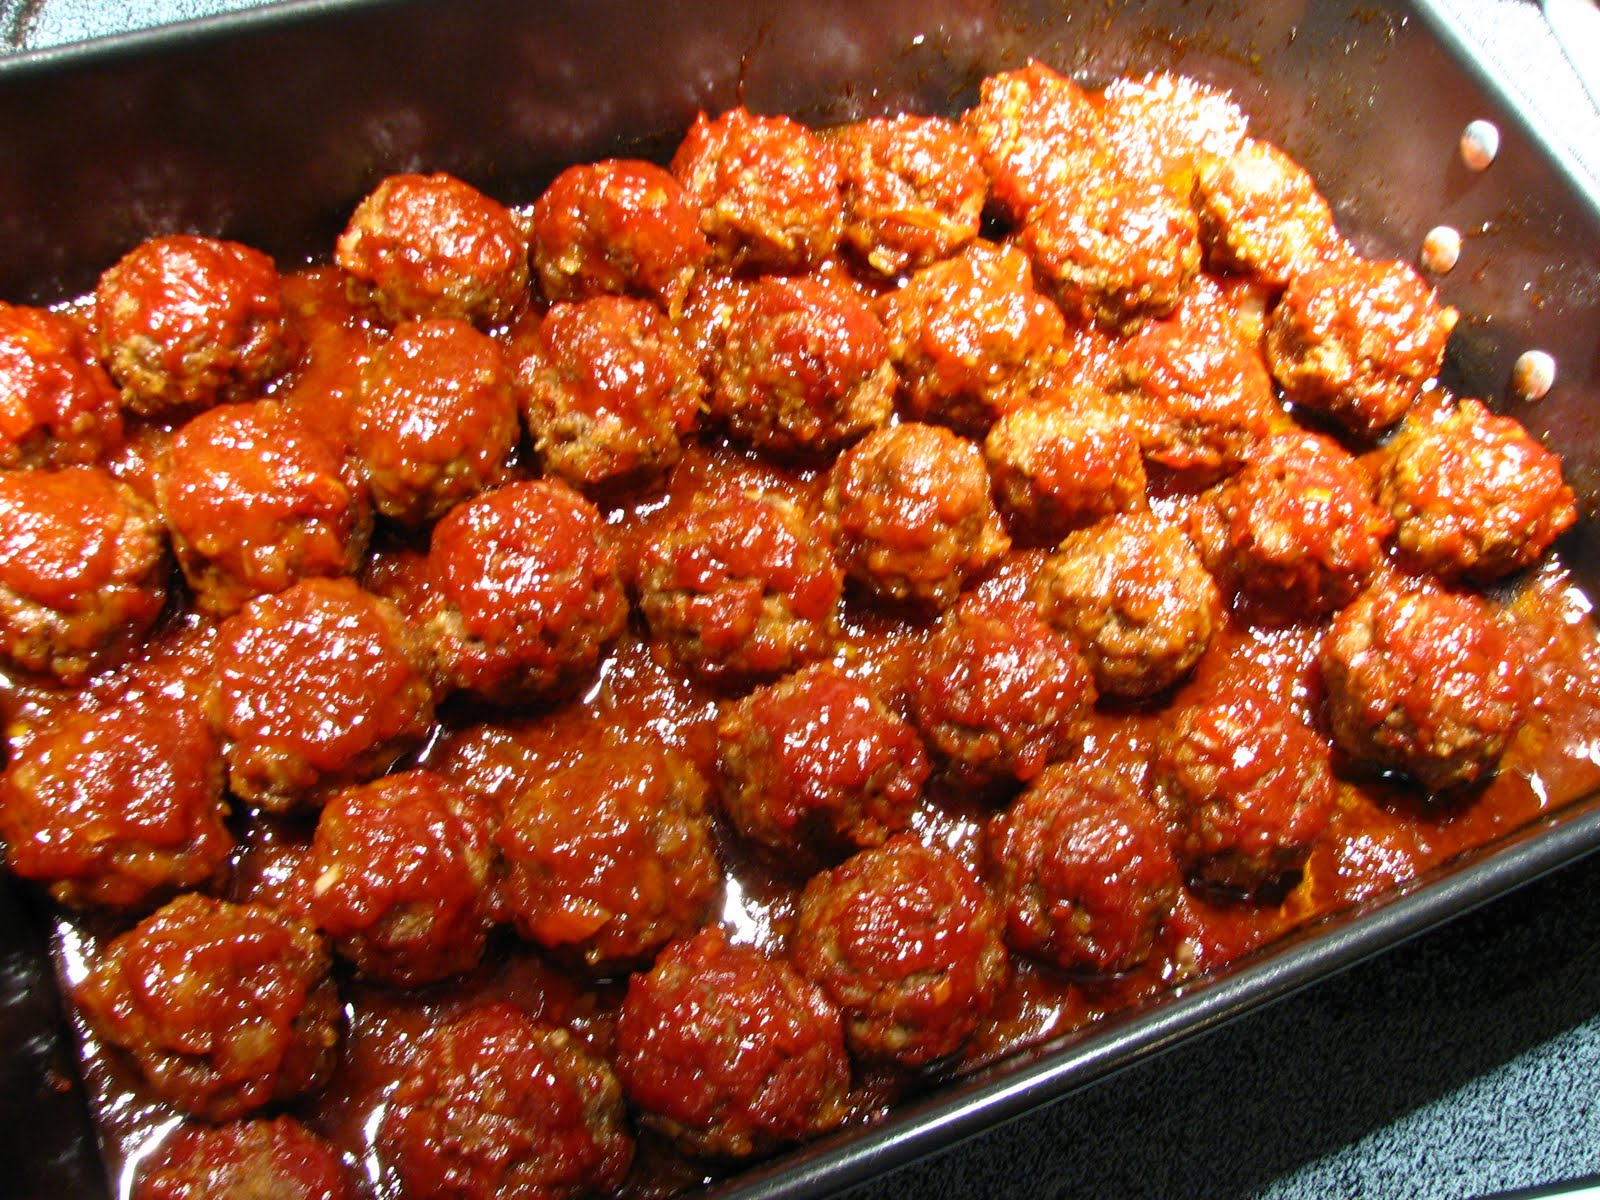 These Baked Barbecue Meatballs are delicious. They are baked in a ...